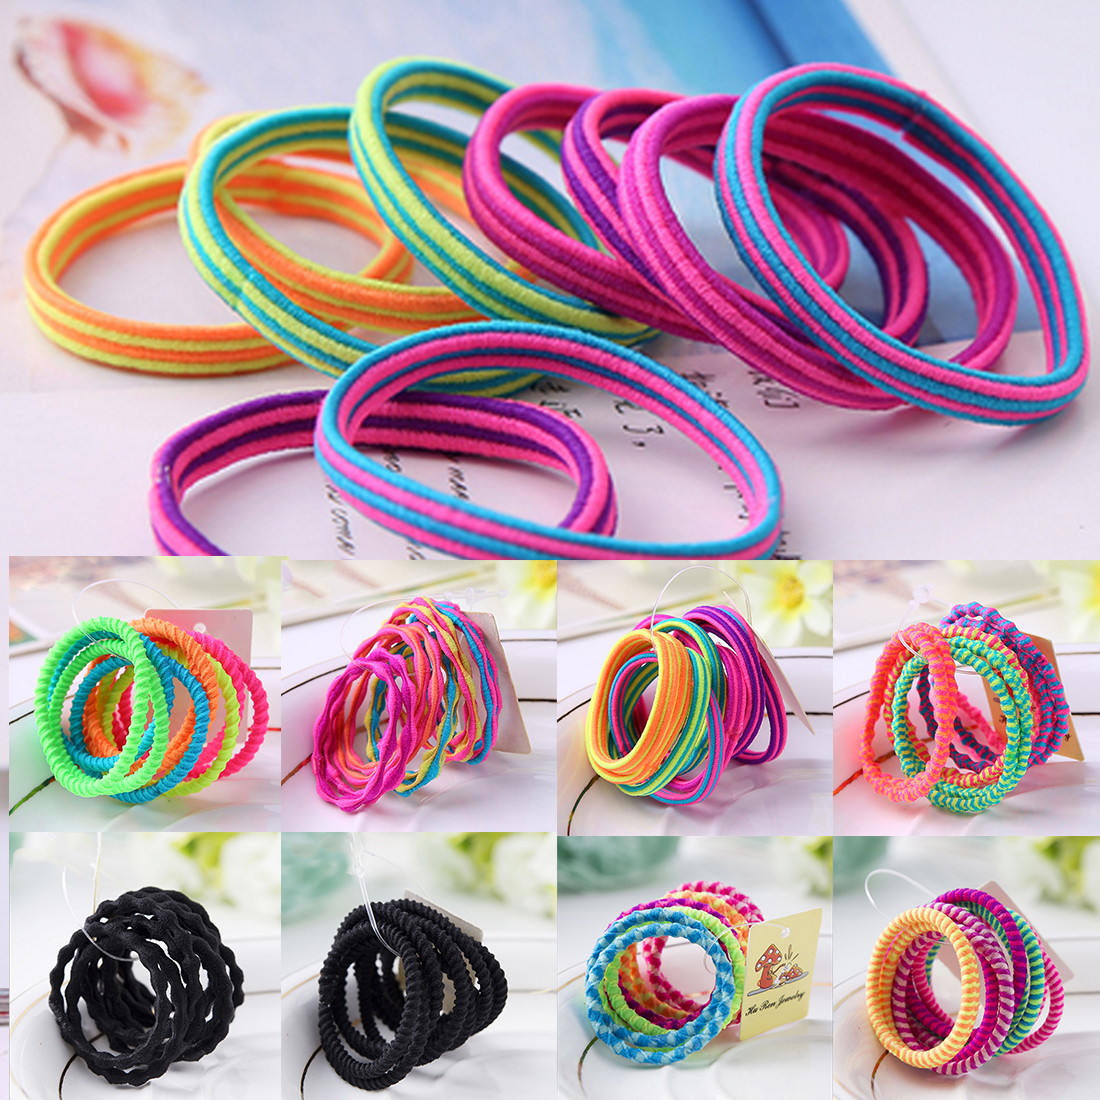 10PCS/Lot Girls Headwear Charming Elastic Hair Band Lovely Hair Ropes Tie Gum Hair Accessories Ponytail Holder new 10pcs women lady hair band velvet elastic ponytail tie bow rubber bobbles lovely